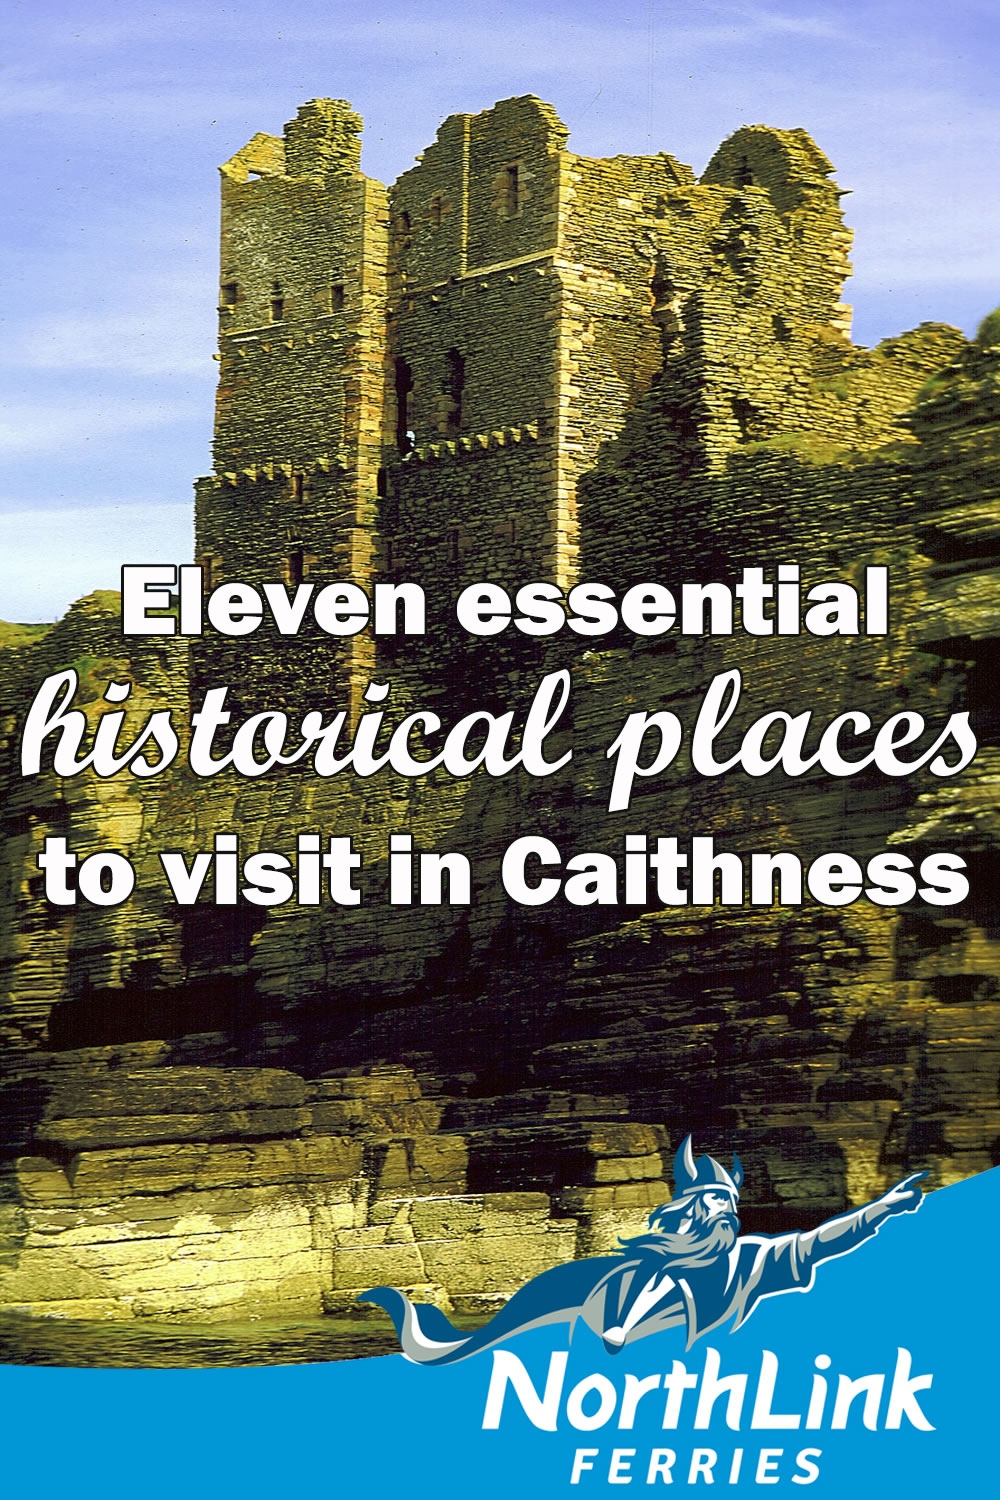 Eleven essential historical places to visit in Caithness